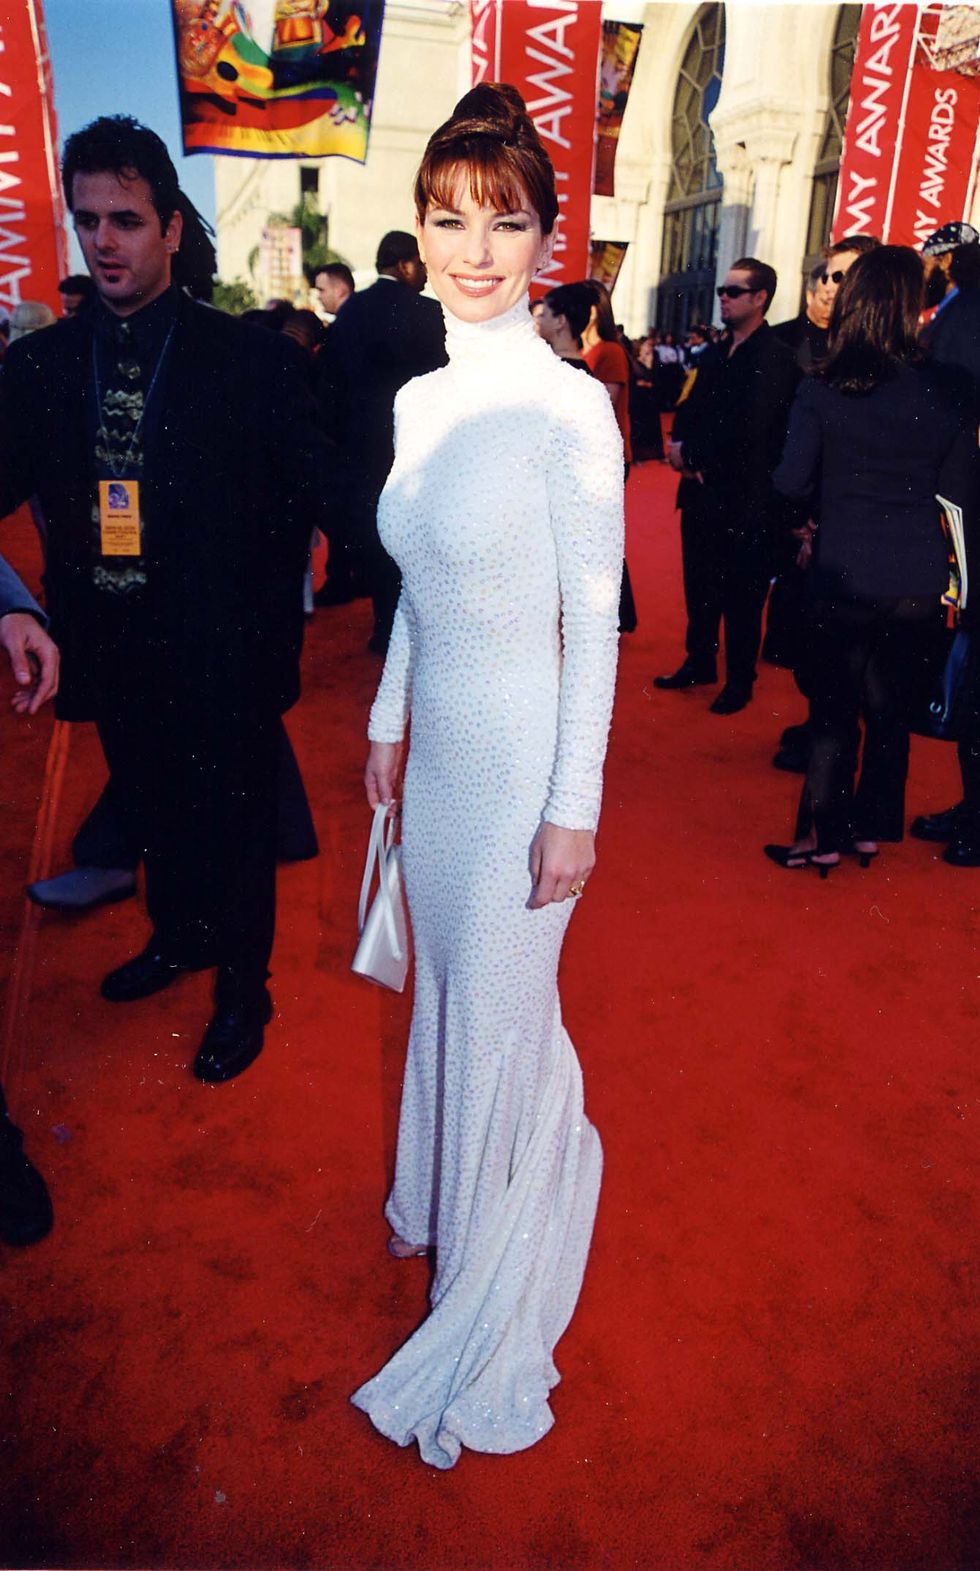 Shania Twain during 1999 Grammy Awards in Los Angeles, California, United States. (Photo by Jeff Kravitz/FilmMagic, Inc)